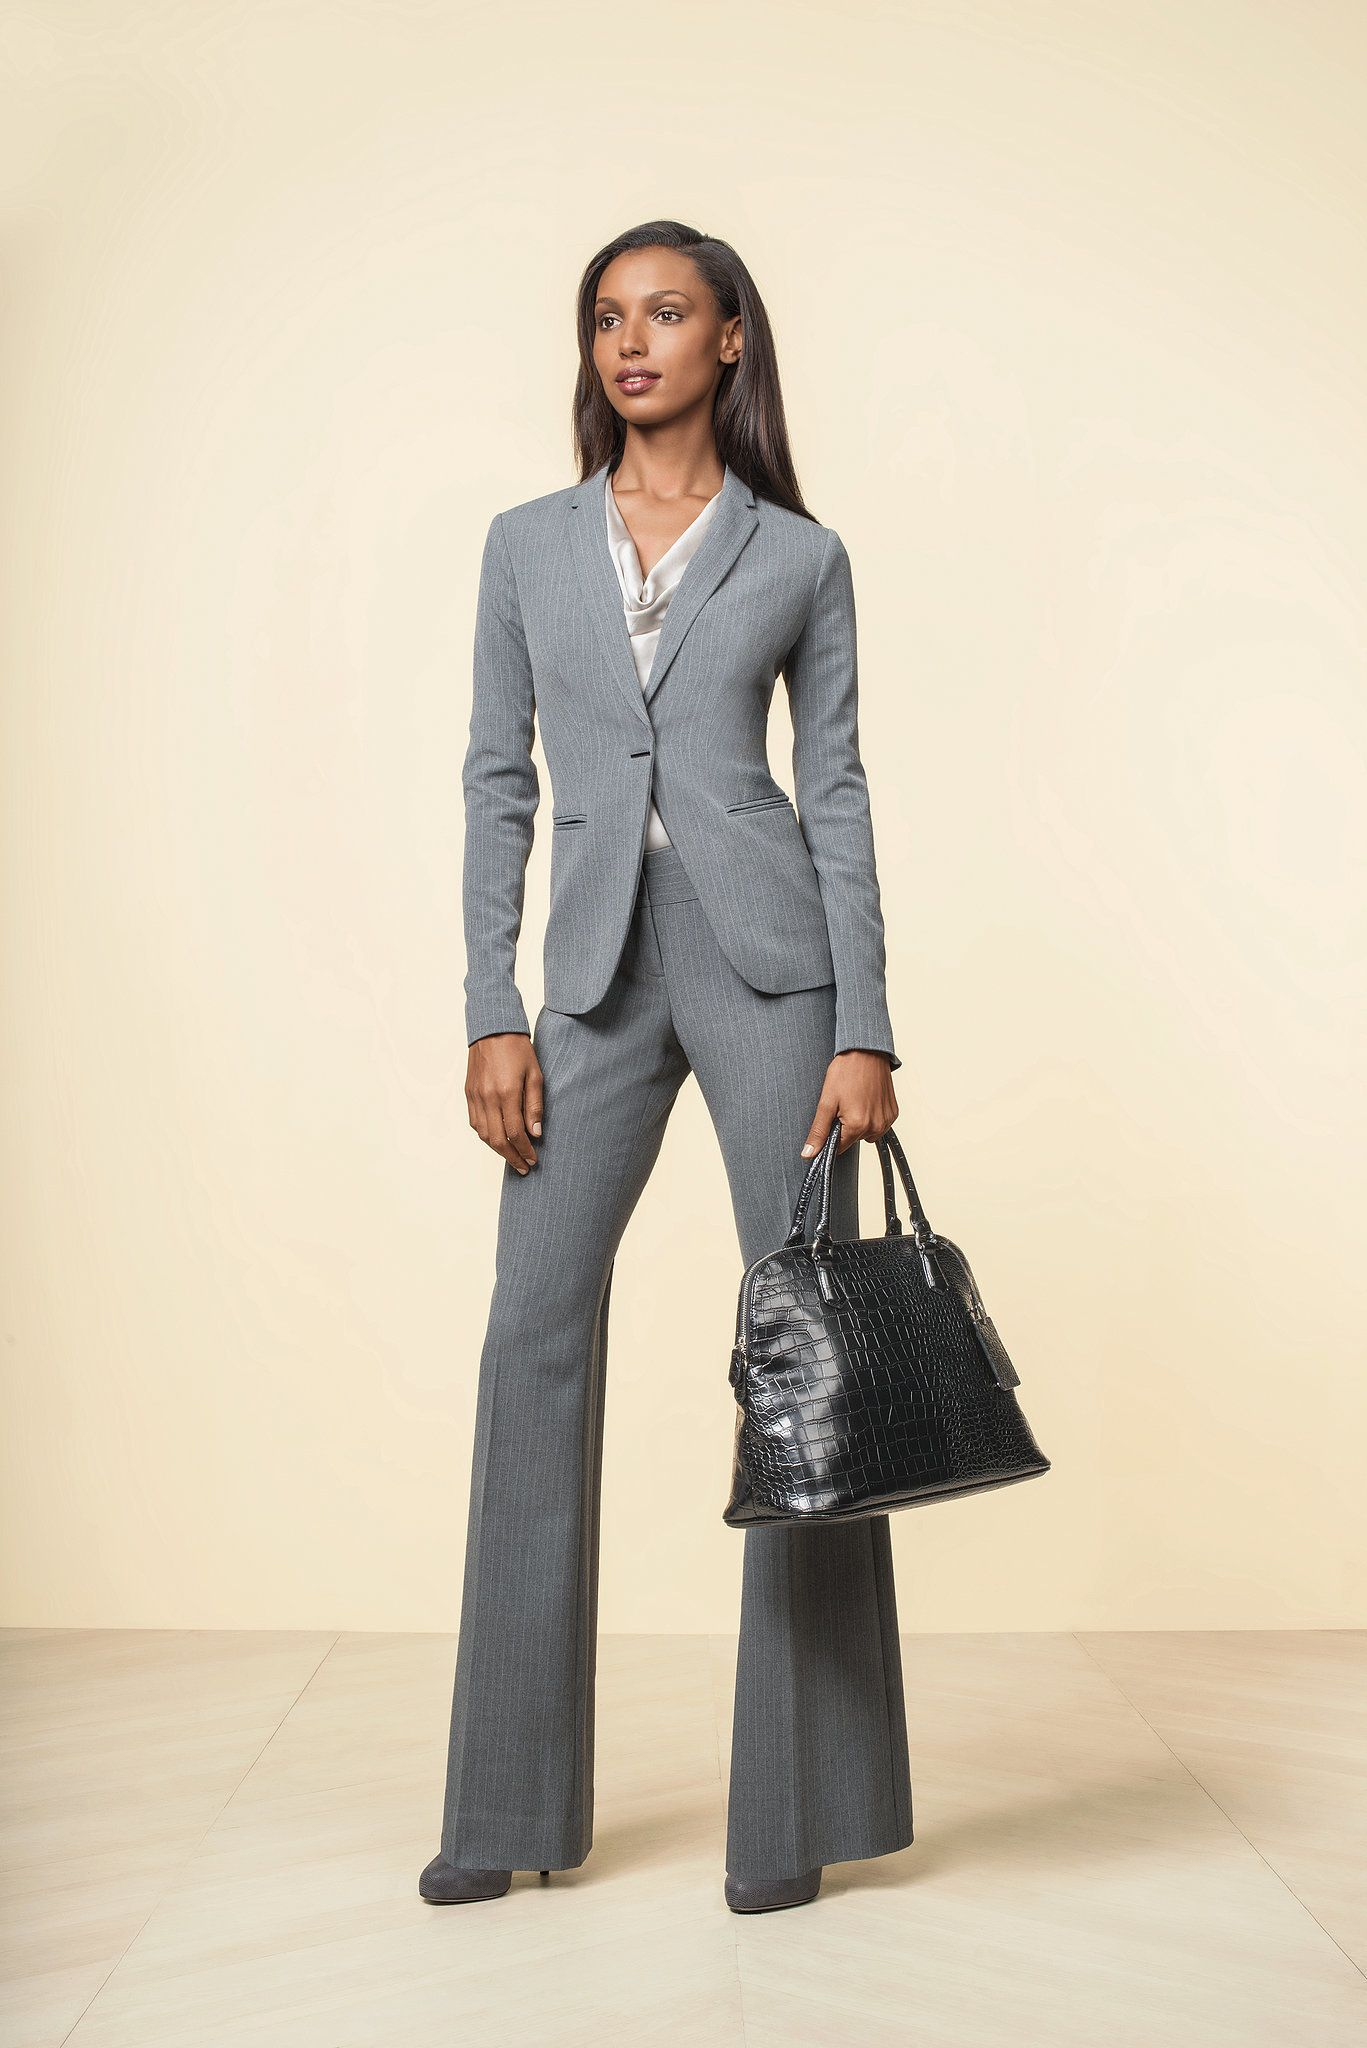 03d43cc8 The Limited Scandal Collection Narrow Lapel Pinstriped Jacket ($168) The  Limited Scandal Collection Liv Flare Leg Trouser Pants ($98) The Limited  Scandal ...